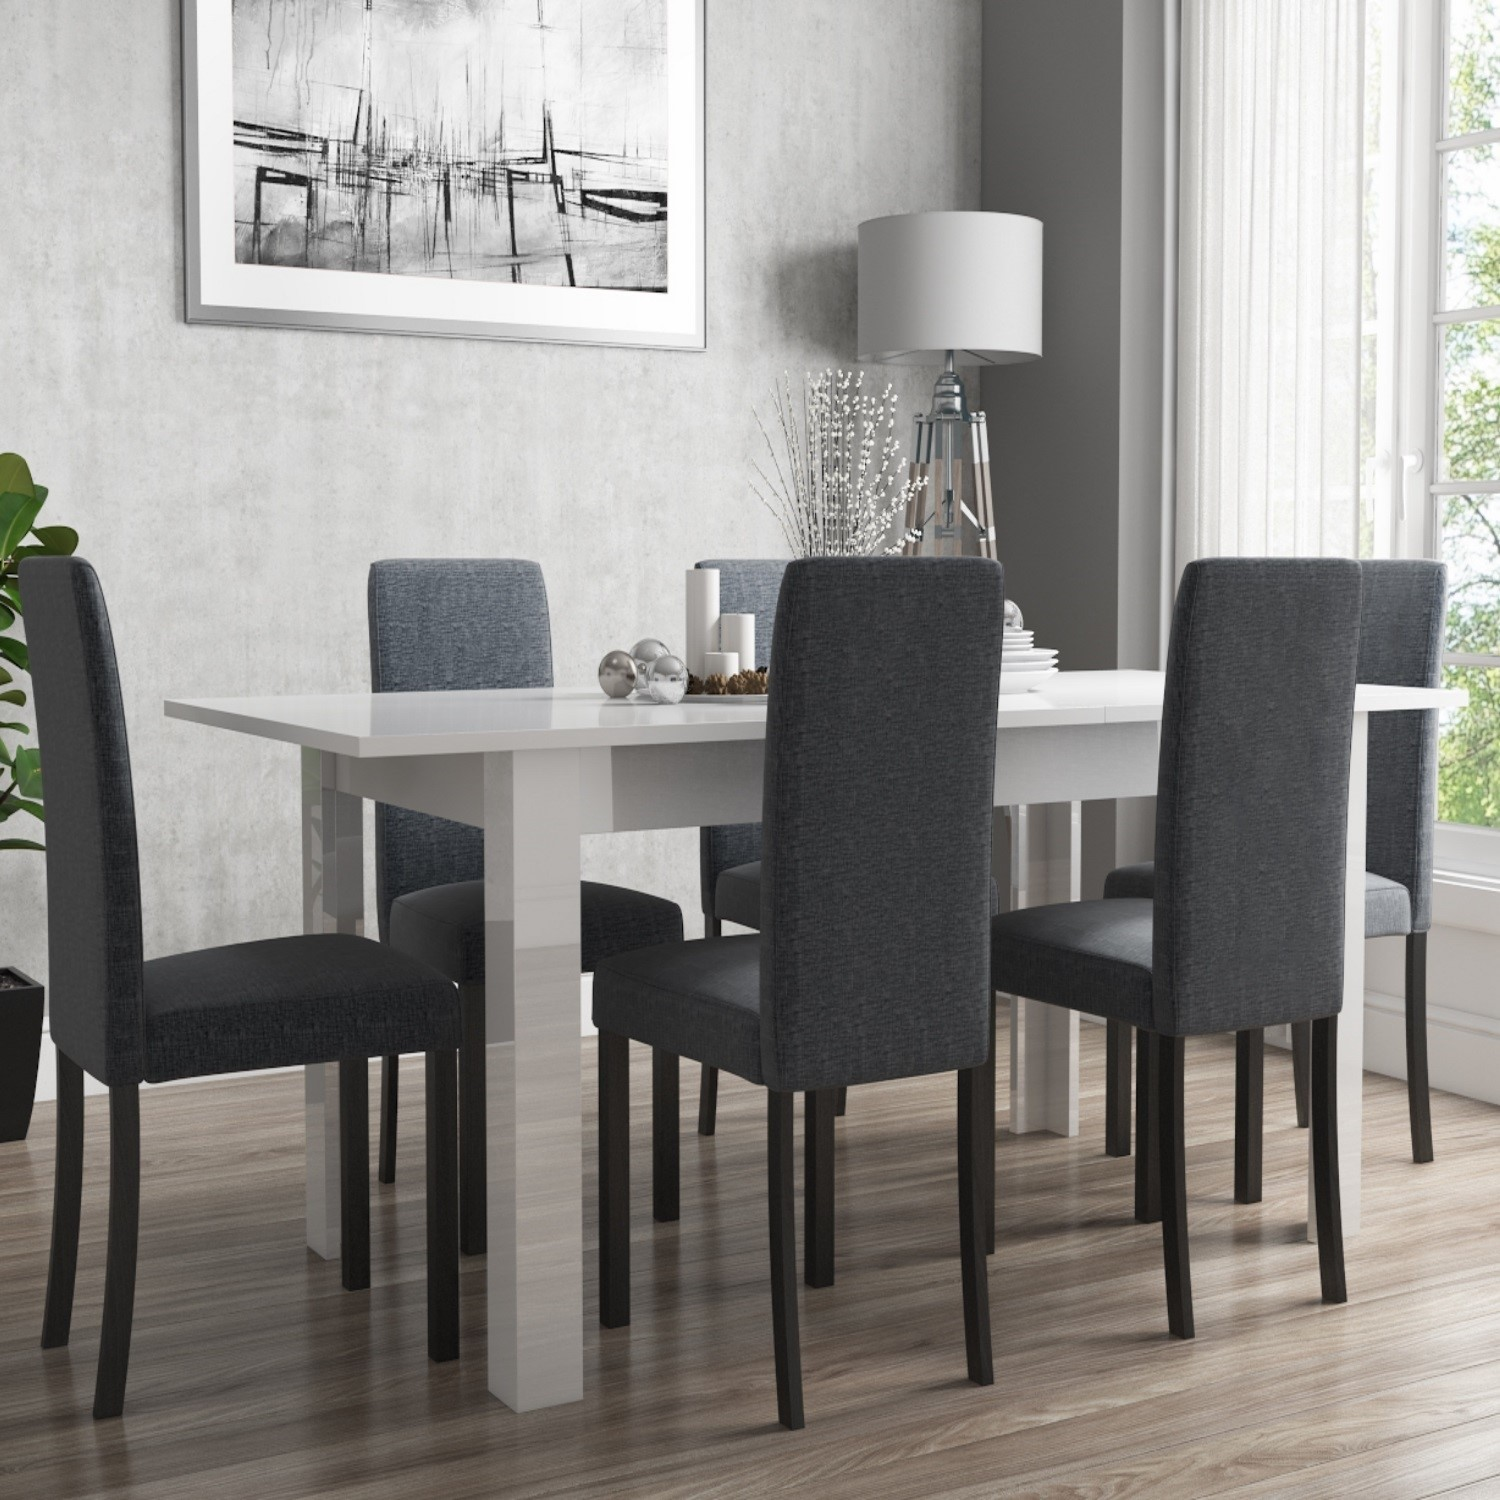 White Extendable White High Gloss Dining Table 6 Slate Grey Chairs